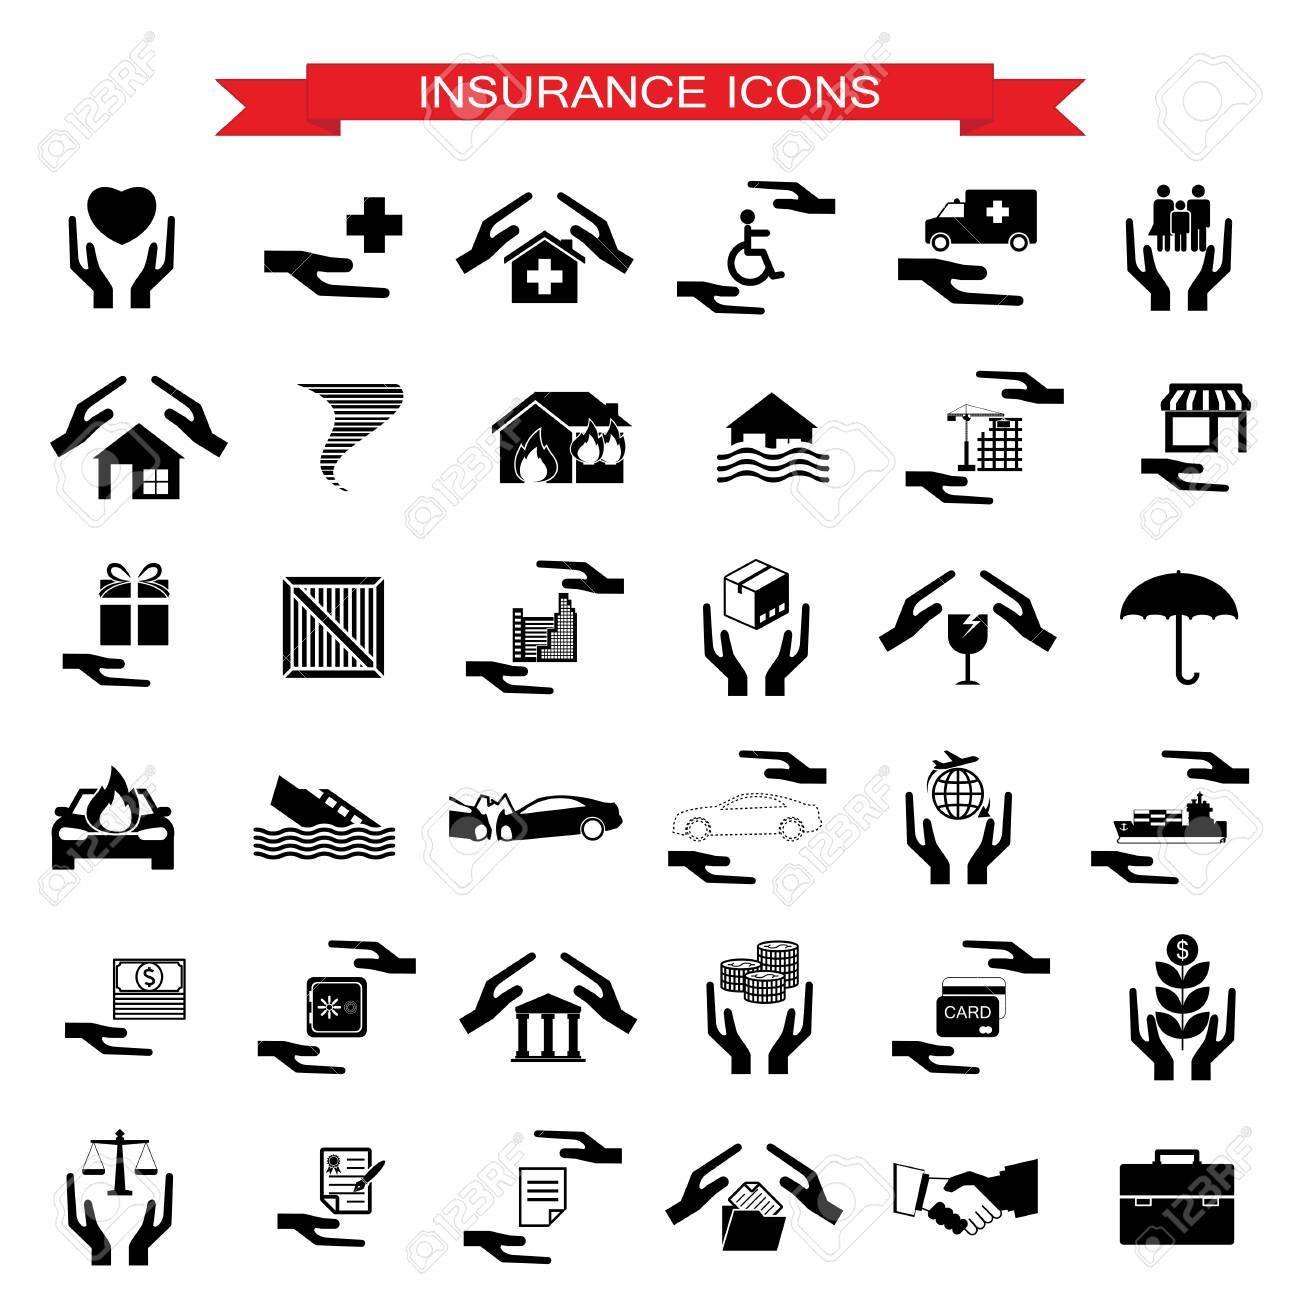 187 lost property cliparts, stock vector and royalty free lost